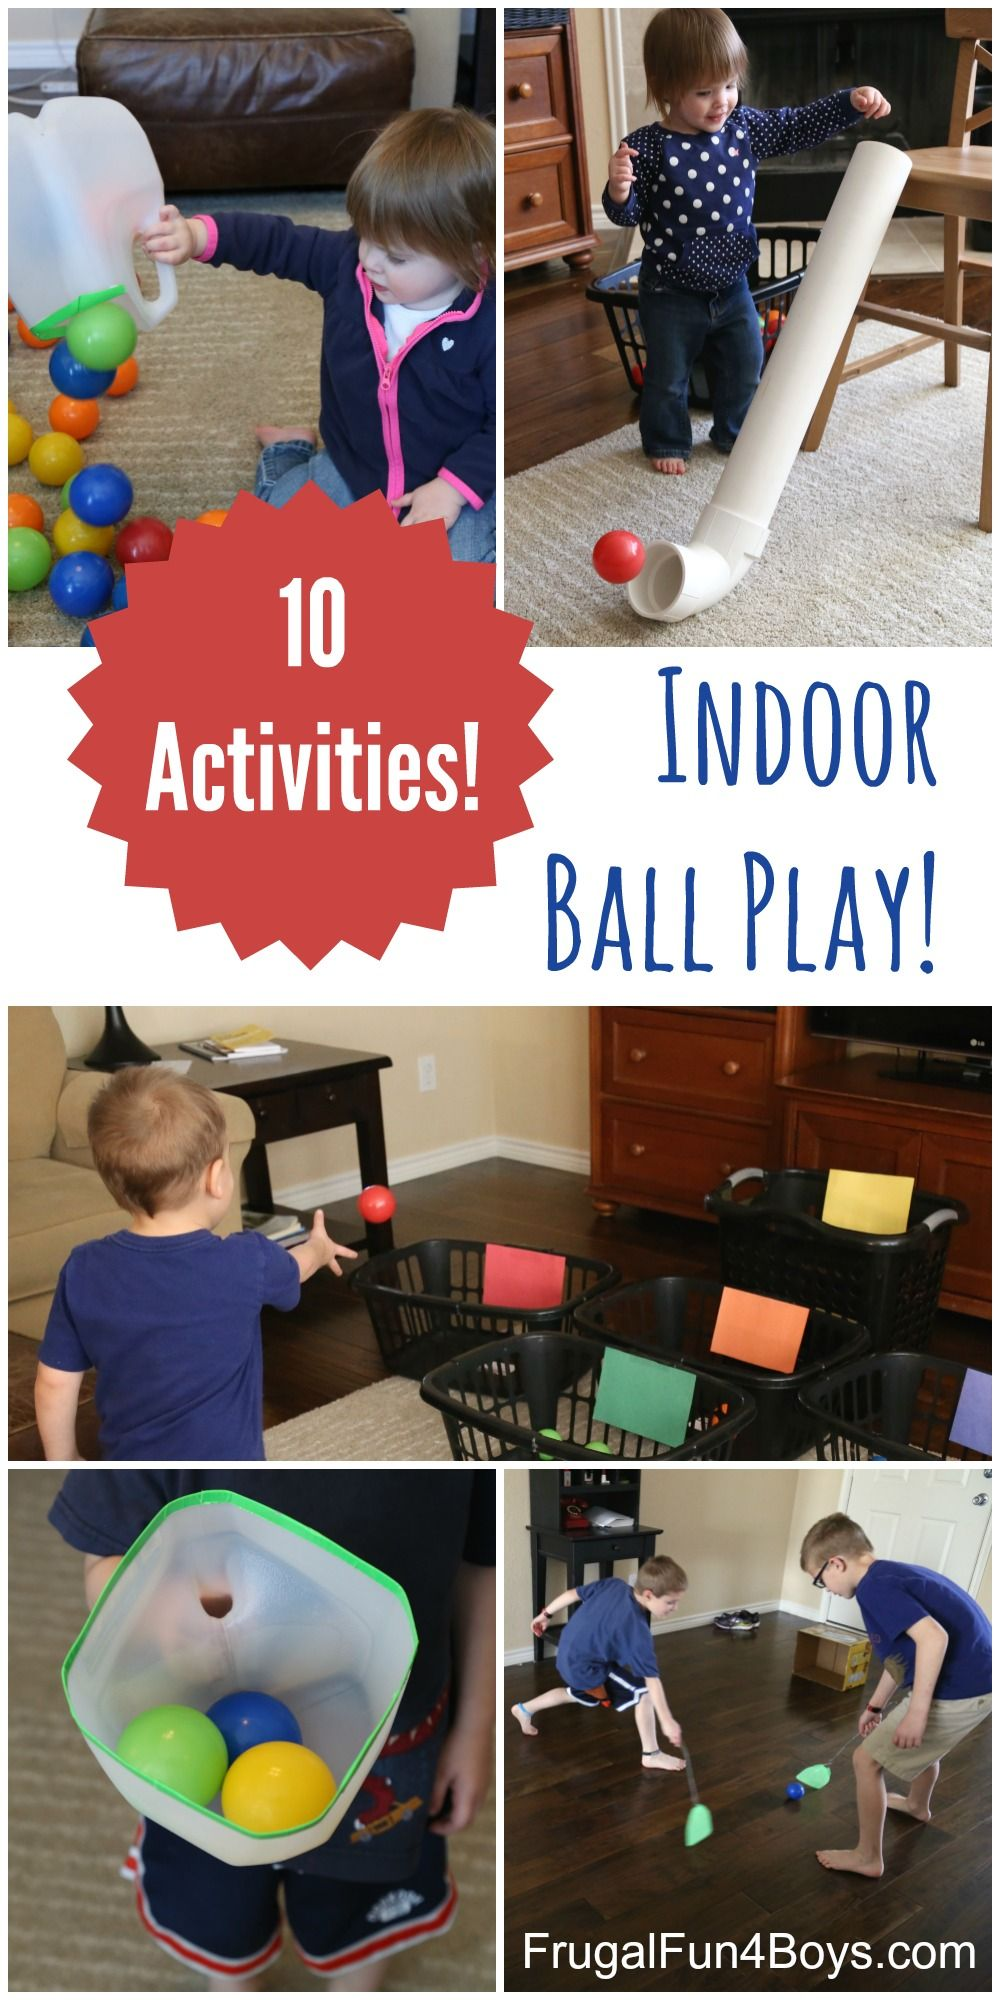 10 ball games for kids ideas for active play indoors toddler approved pinterest spiele. Black Bedroom Furniture Sets. Home Design Ideas